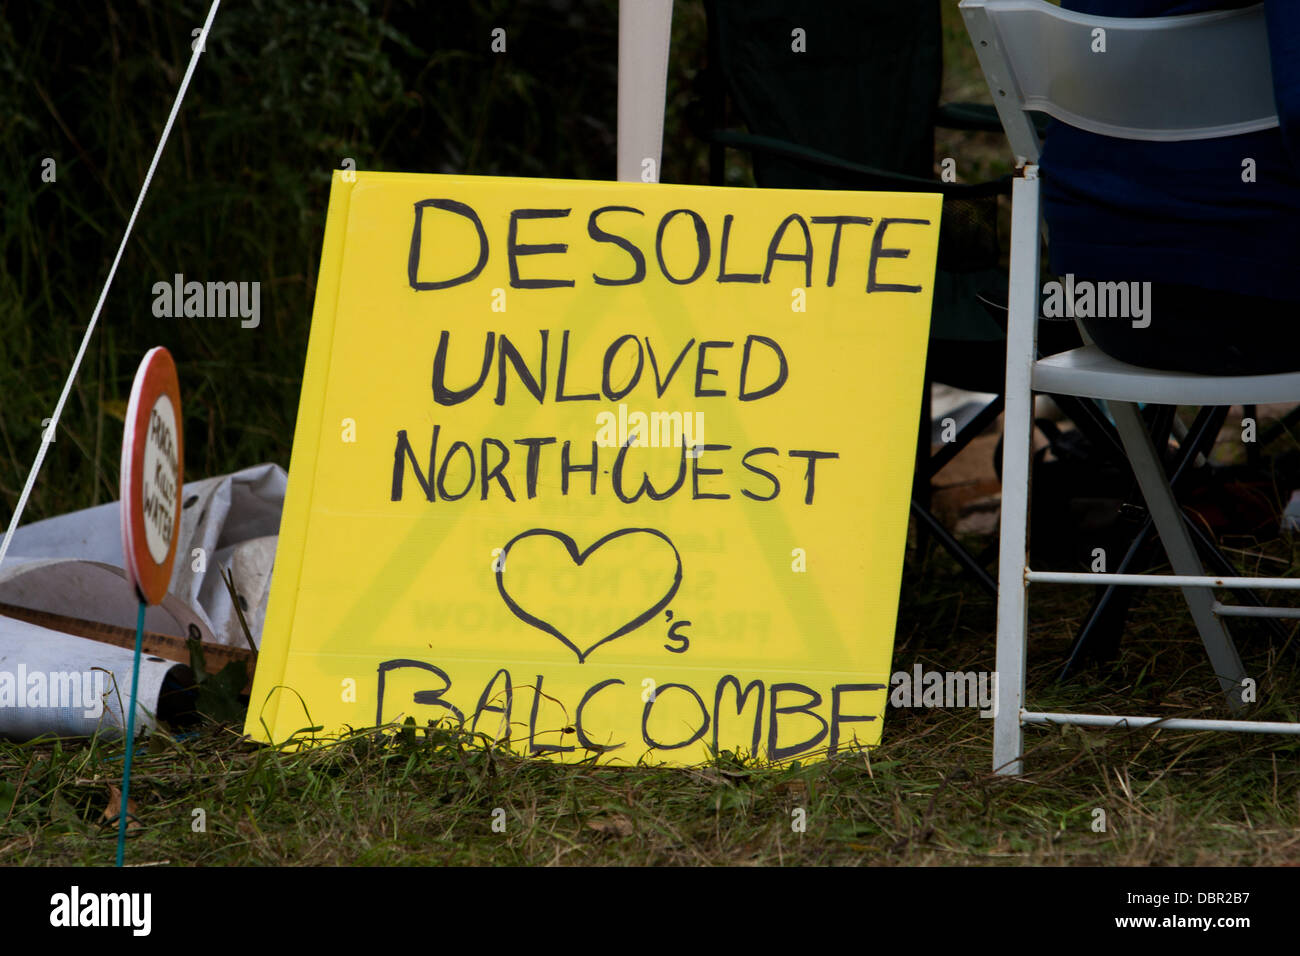 Balcombe, UK. 2nd August, 2013. Placard from the 'desolate unloved northwest' at protest against Cuadrilla - Stock Image